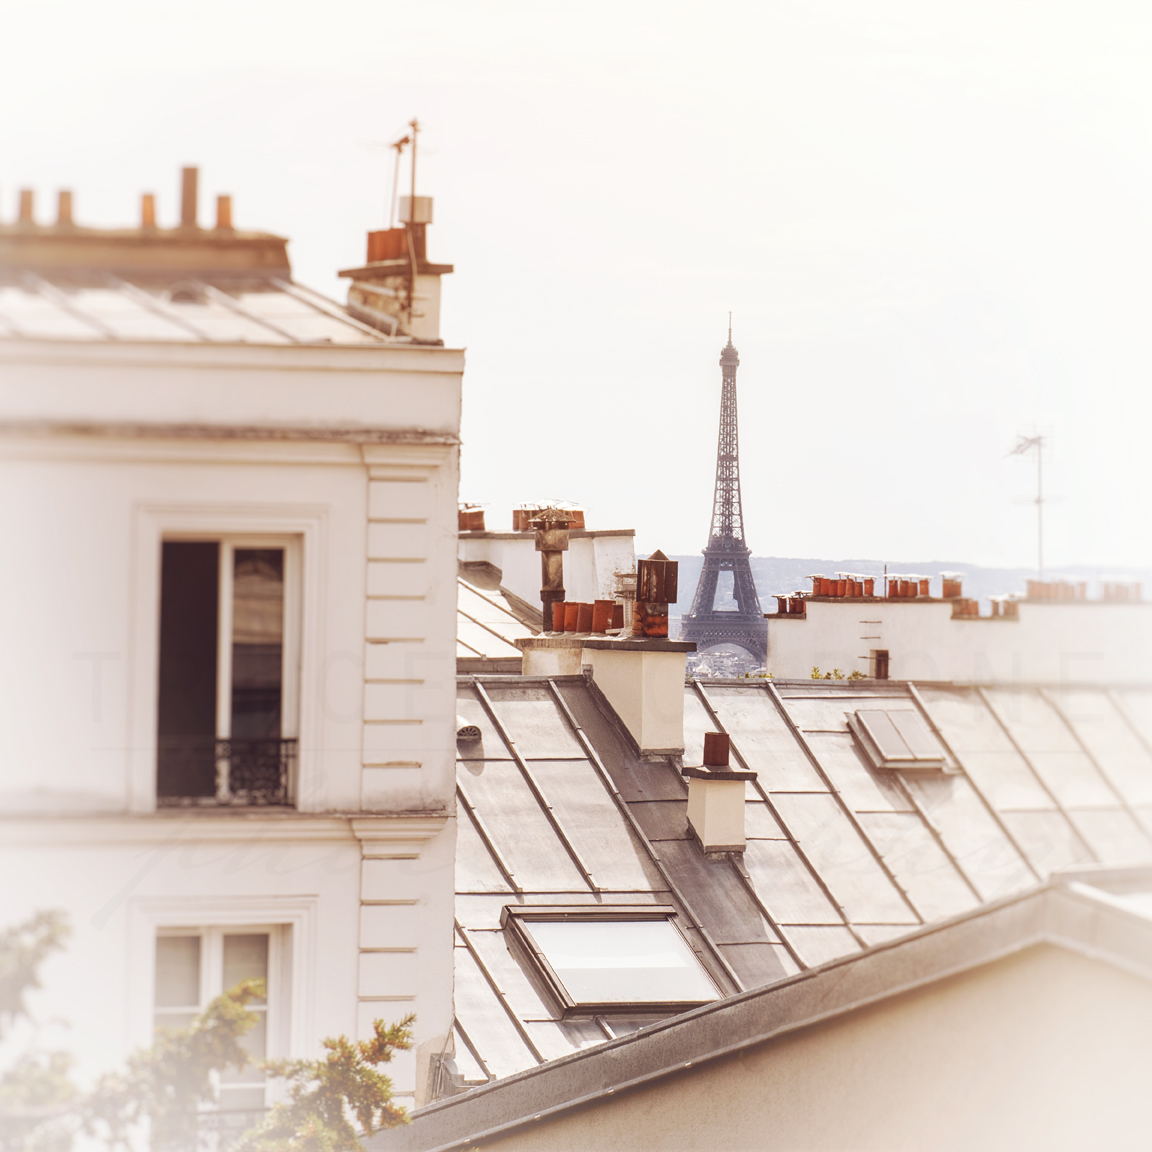 The Eiffel Tower as seen from Montmartre by Chicago artist Tracey Capone